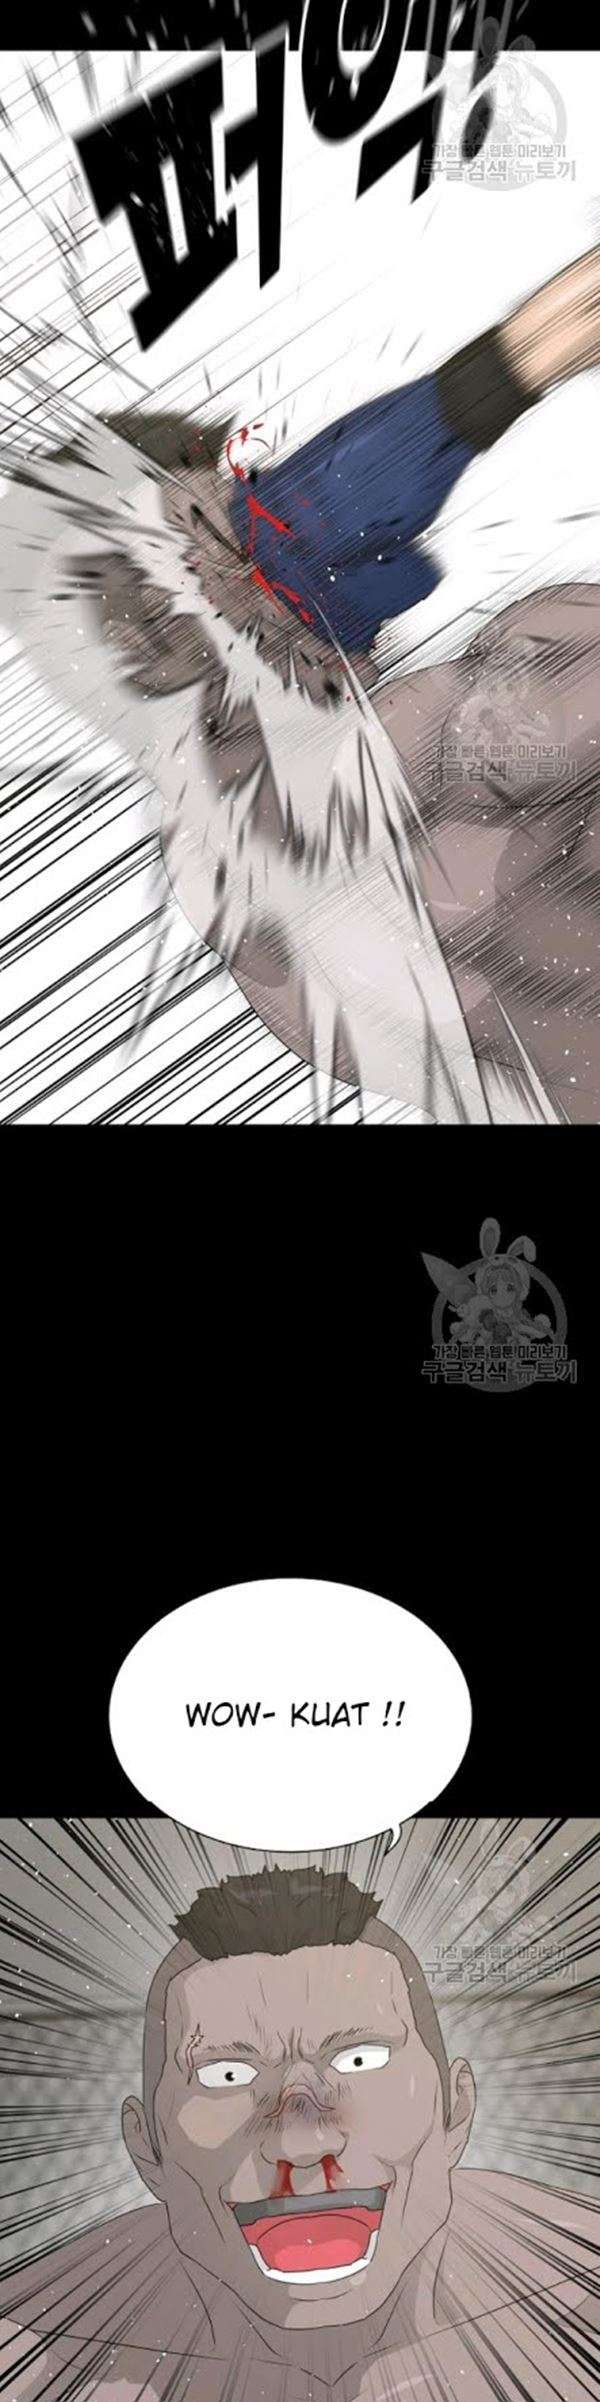 Trigger Chapter 61